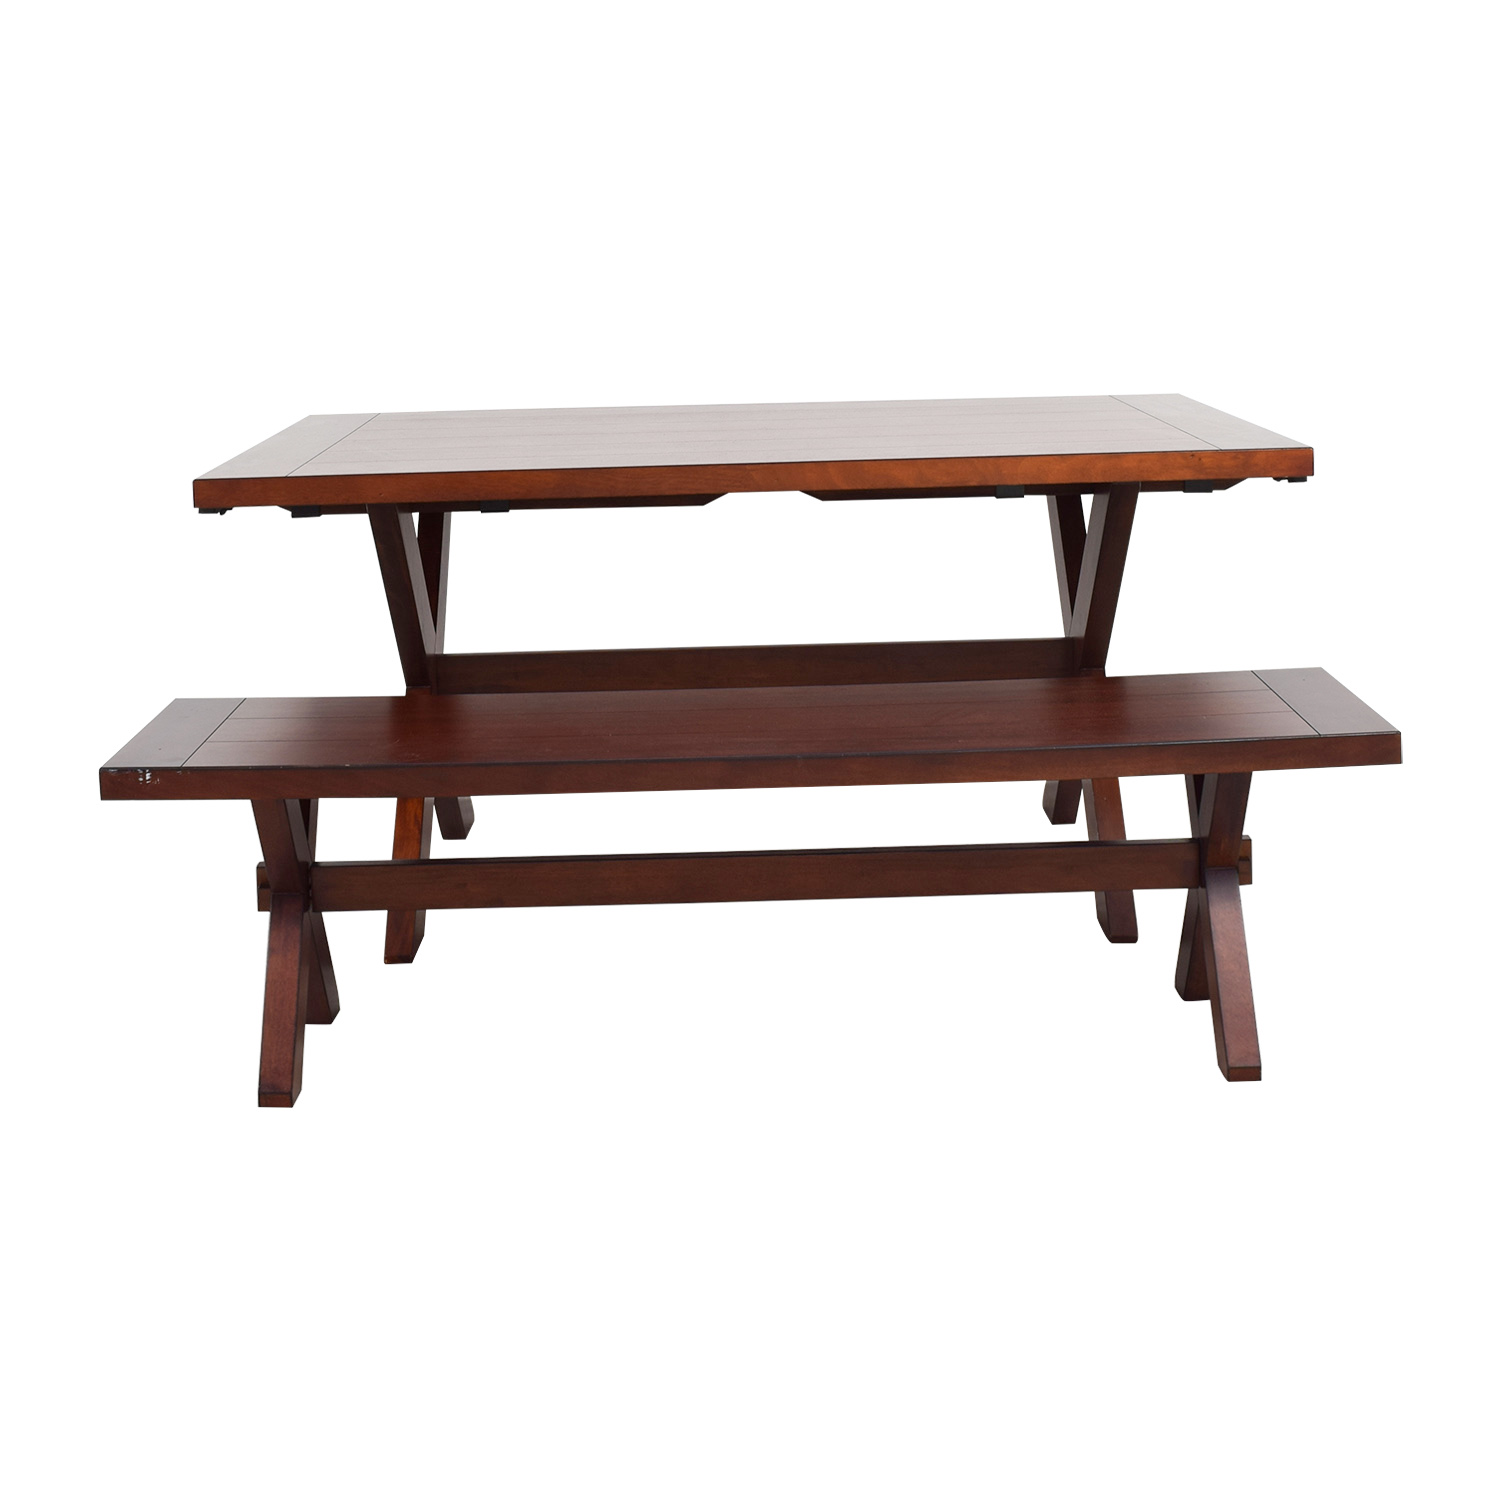 90% OFF - Pier 1 Pier 1 Imports Nolan Wood Dining Table with Bench / Tables